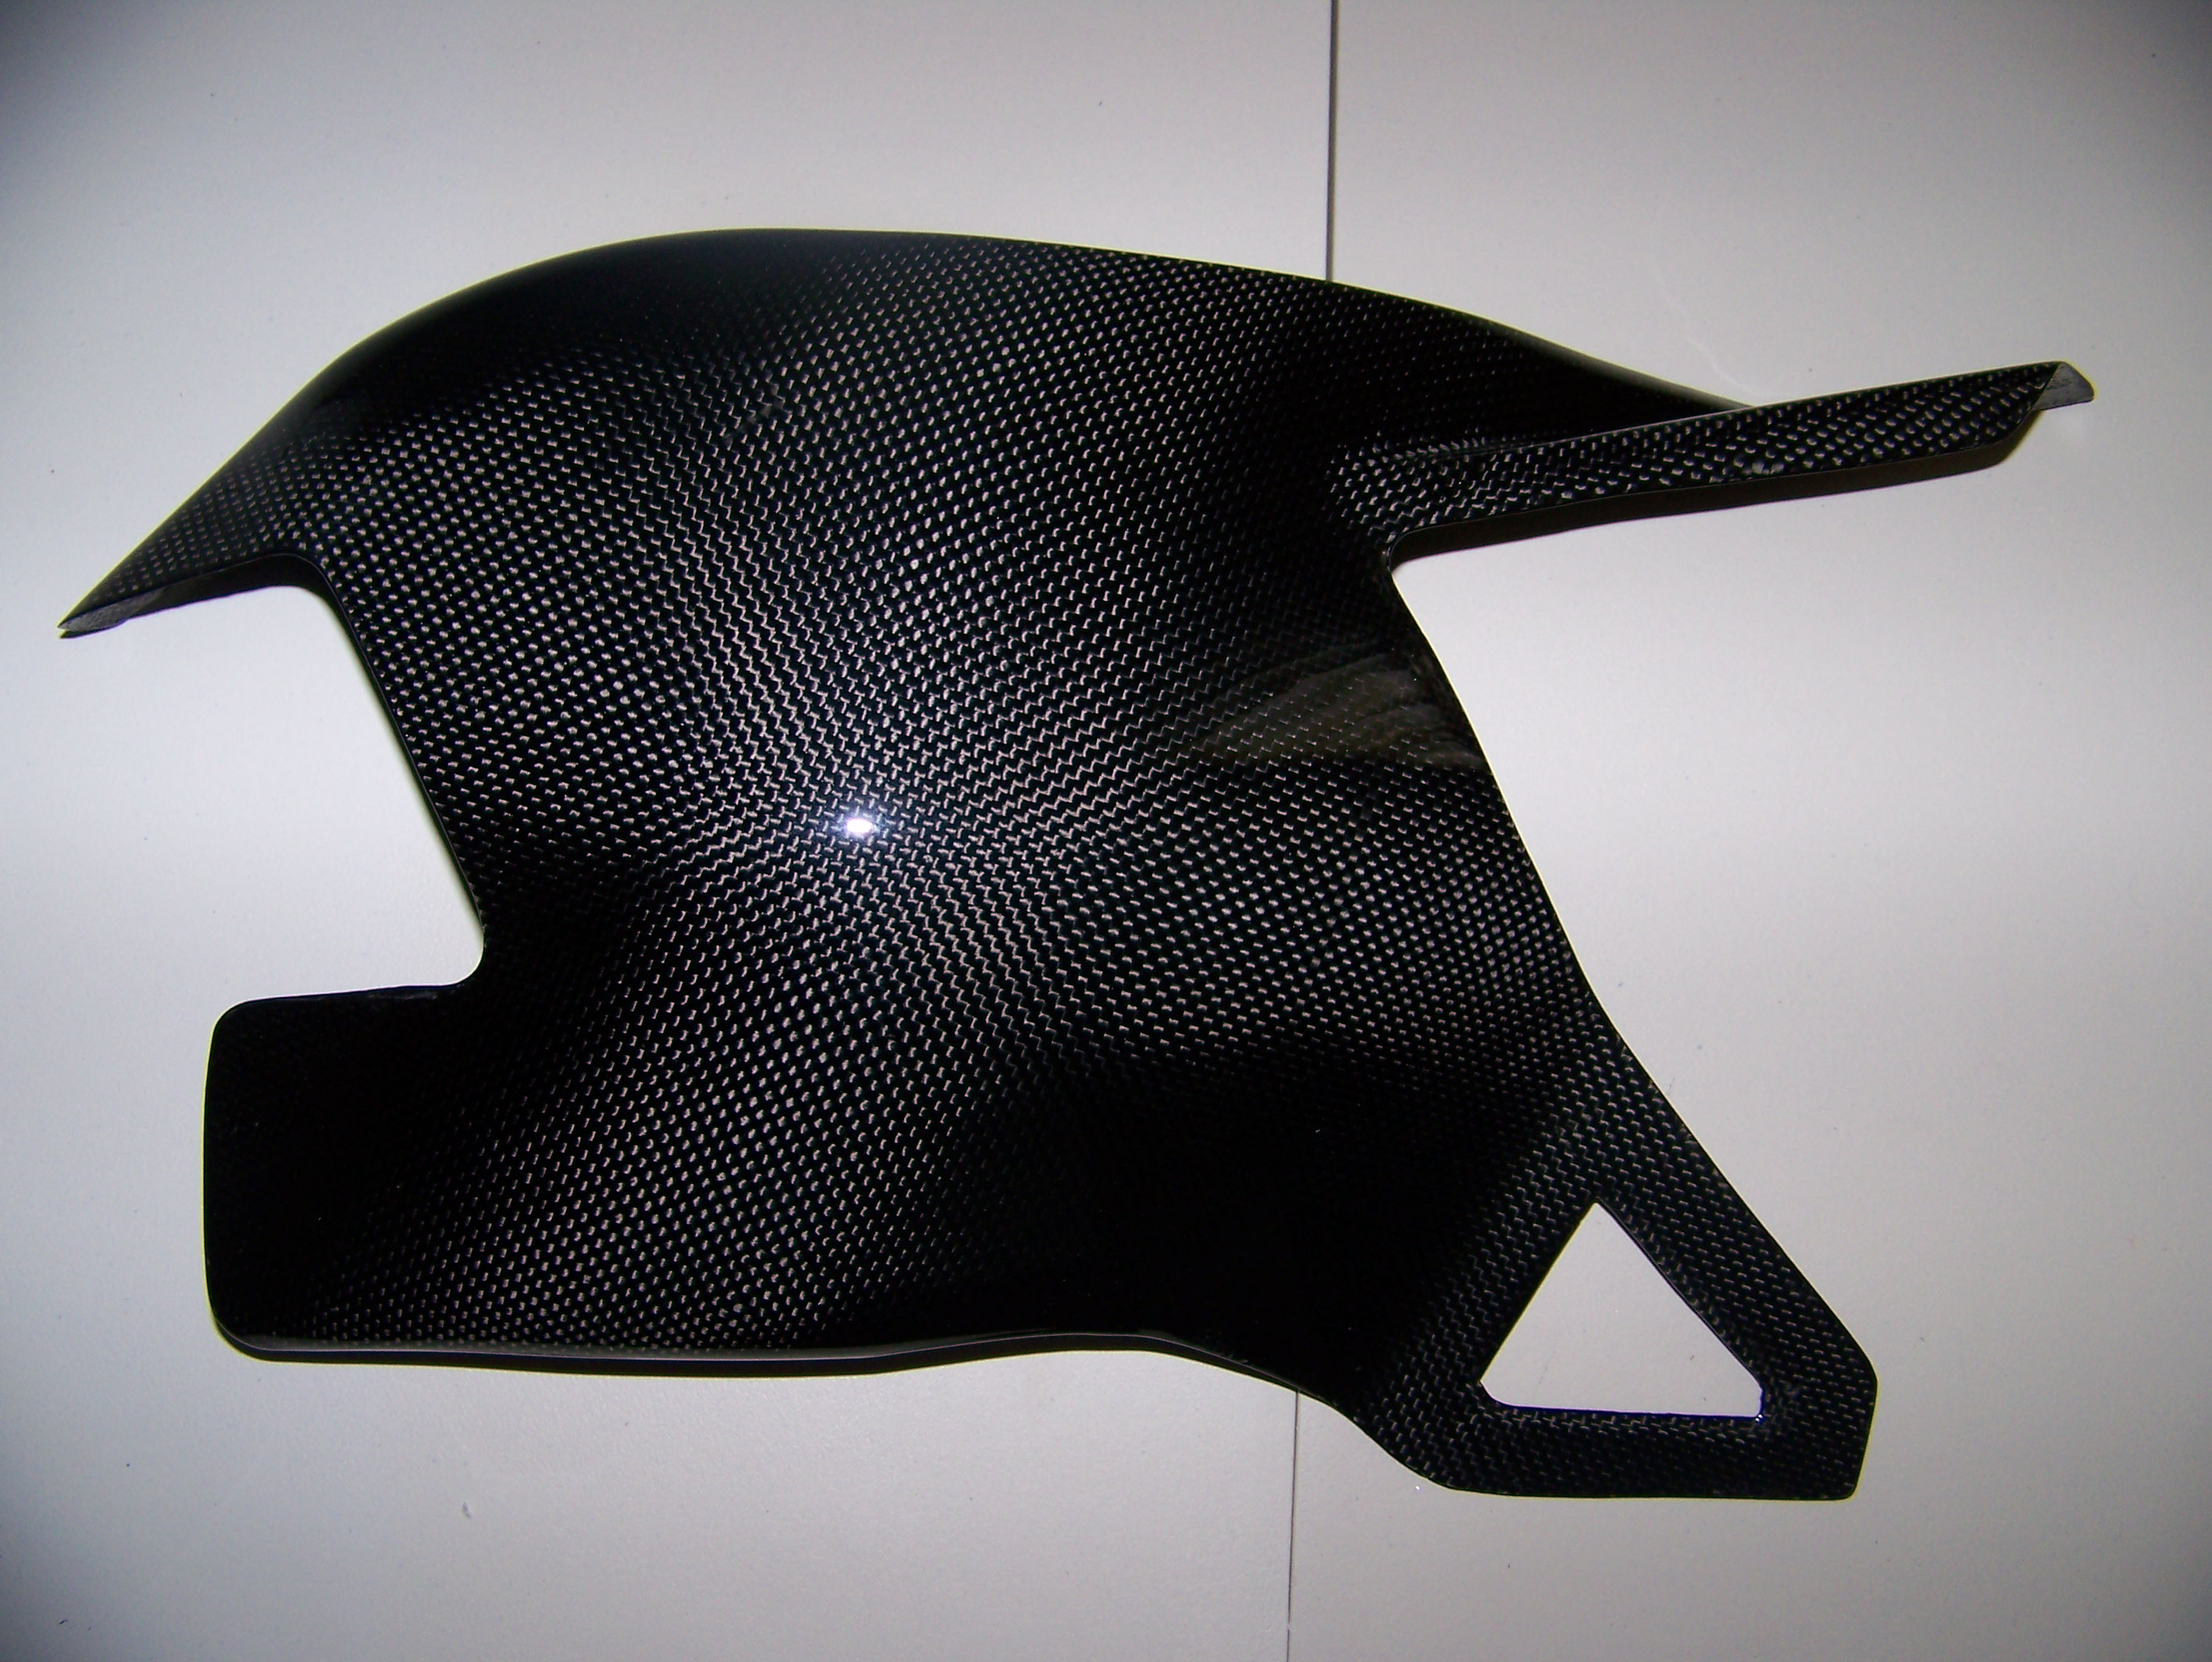 848 1098 1198 swingarm cover with chainguard